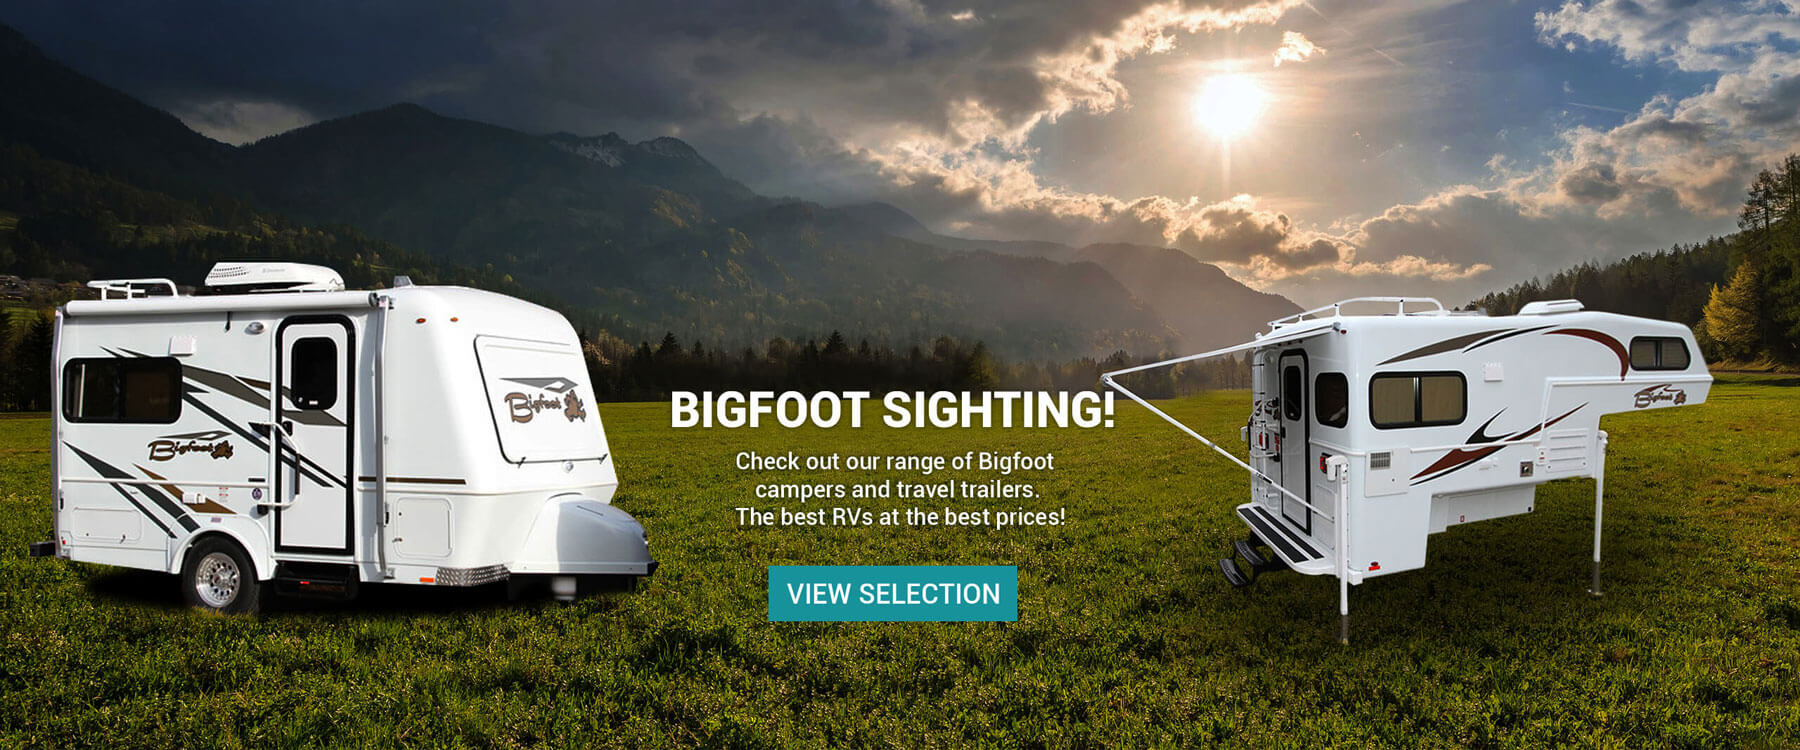 Banner-BigFoot-RV-1800